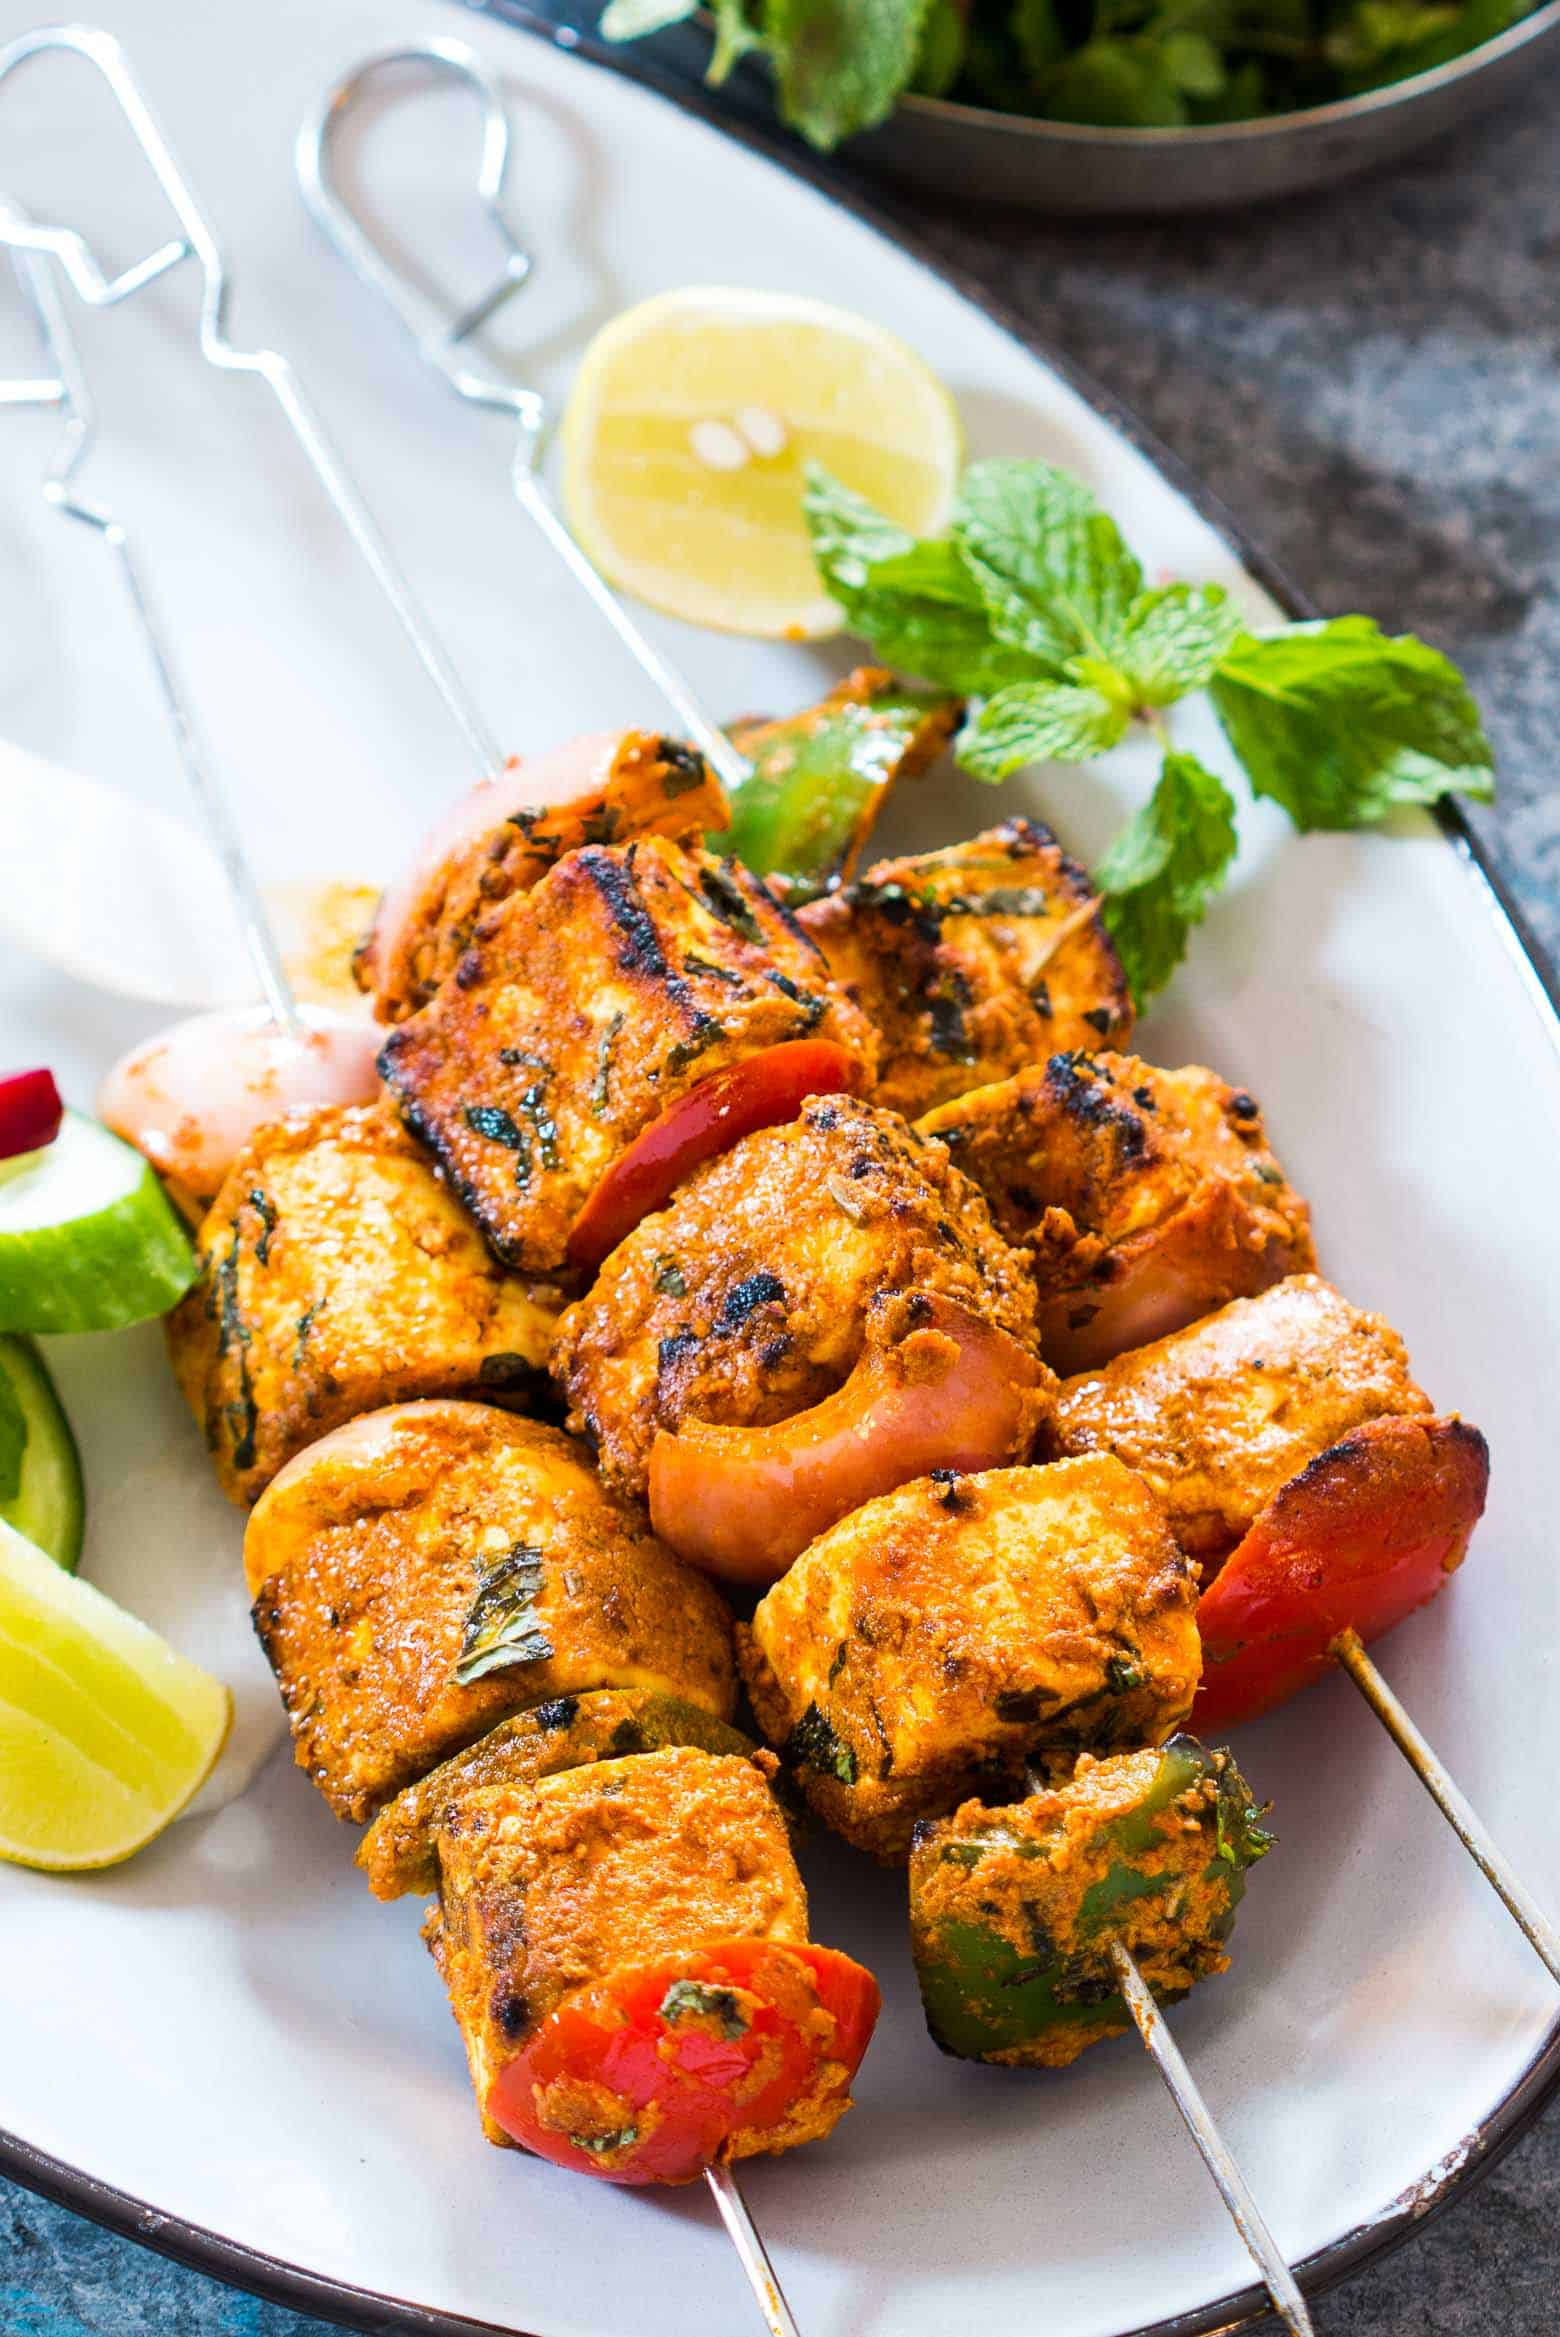 7 Tandoori Dishes for Dad